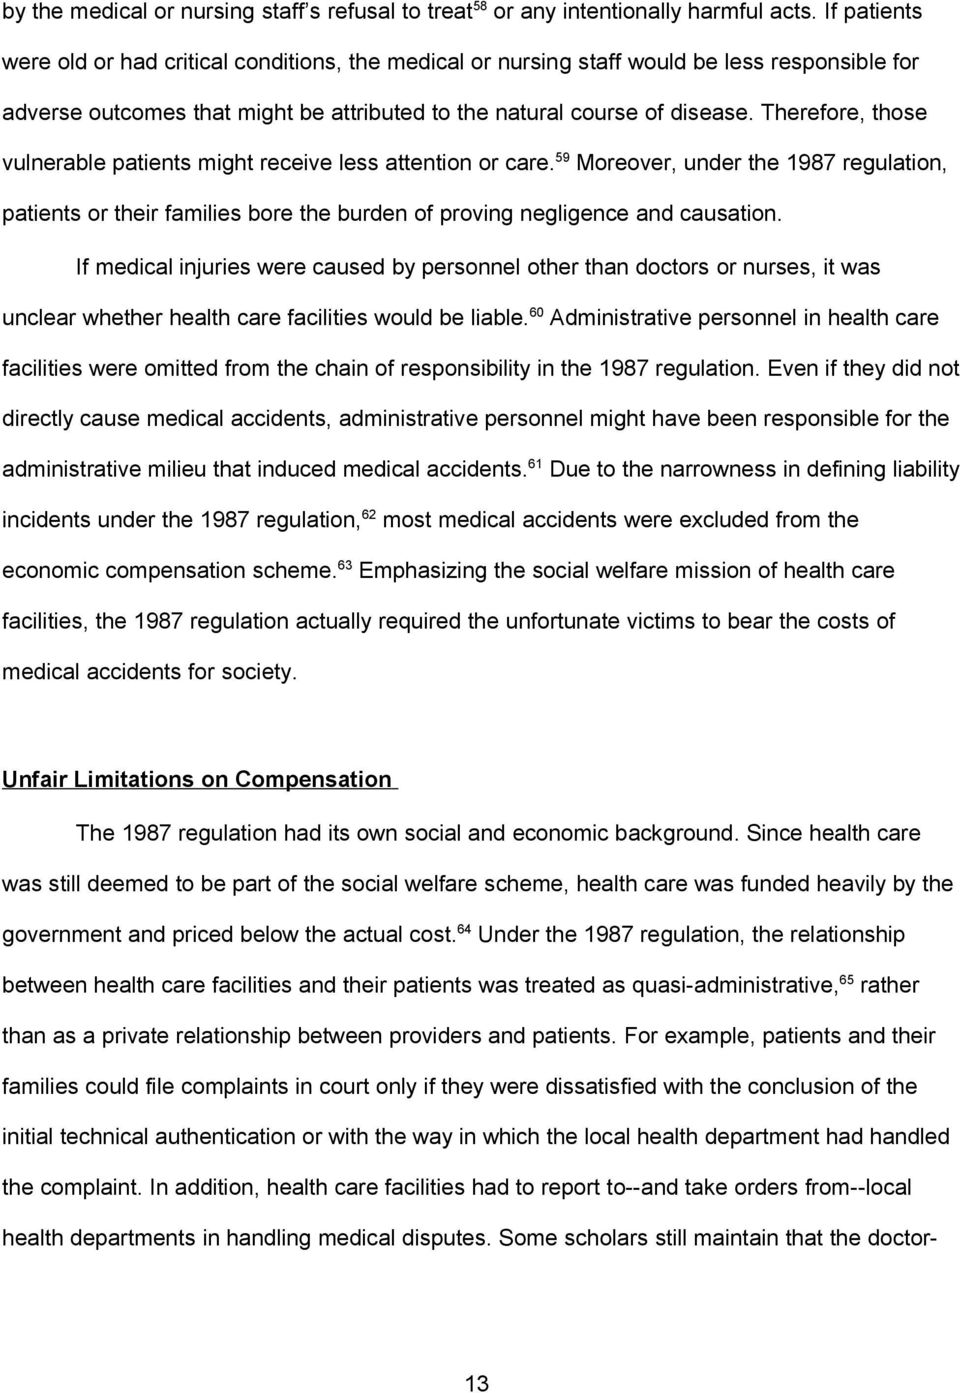 Therefore, those vulnerable patients might receive less attention or care. 59 Moreover, under the 1987 regulation, patients or their families bore the burden of proving negligence and causation.